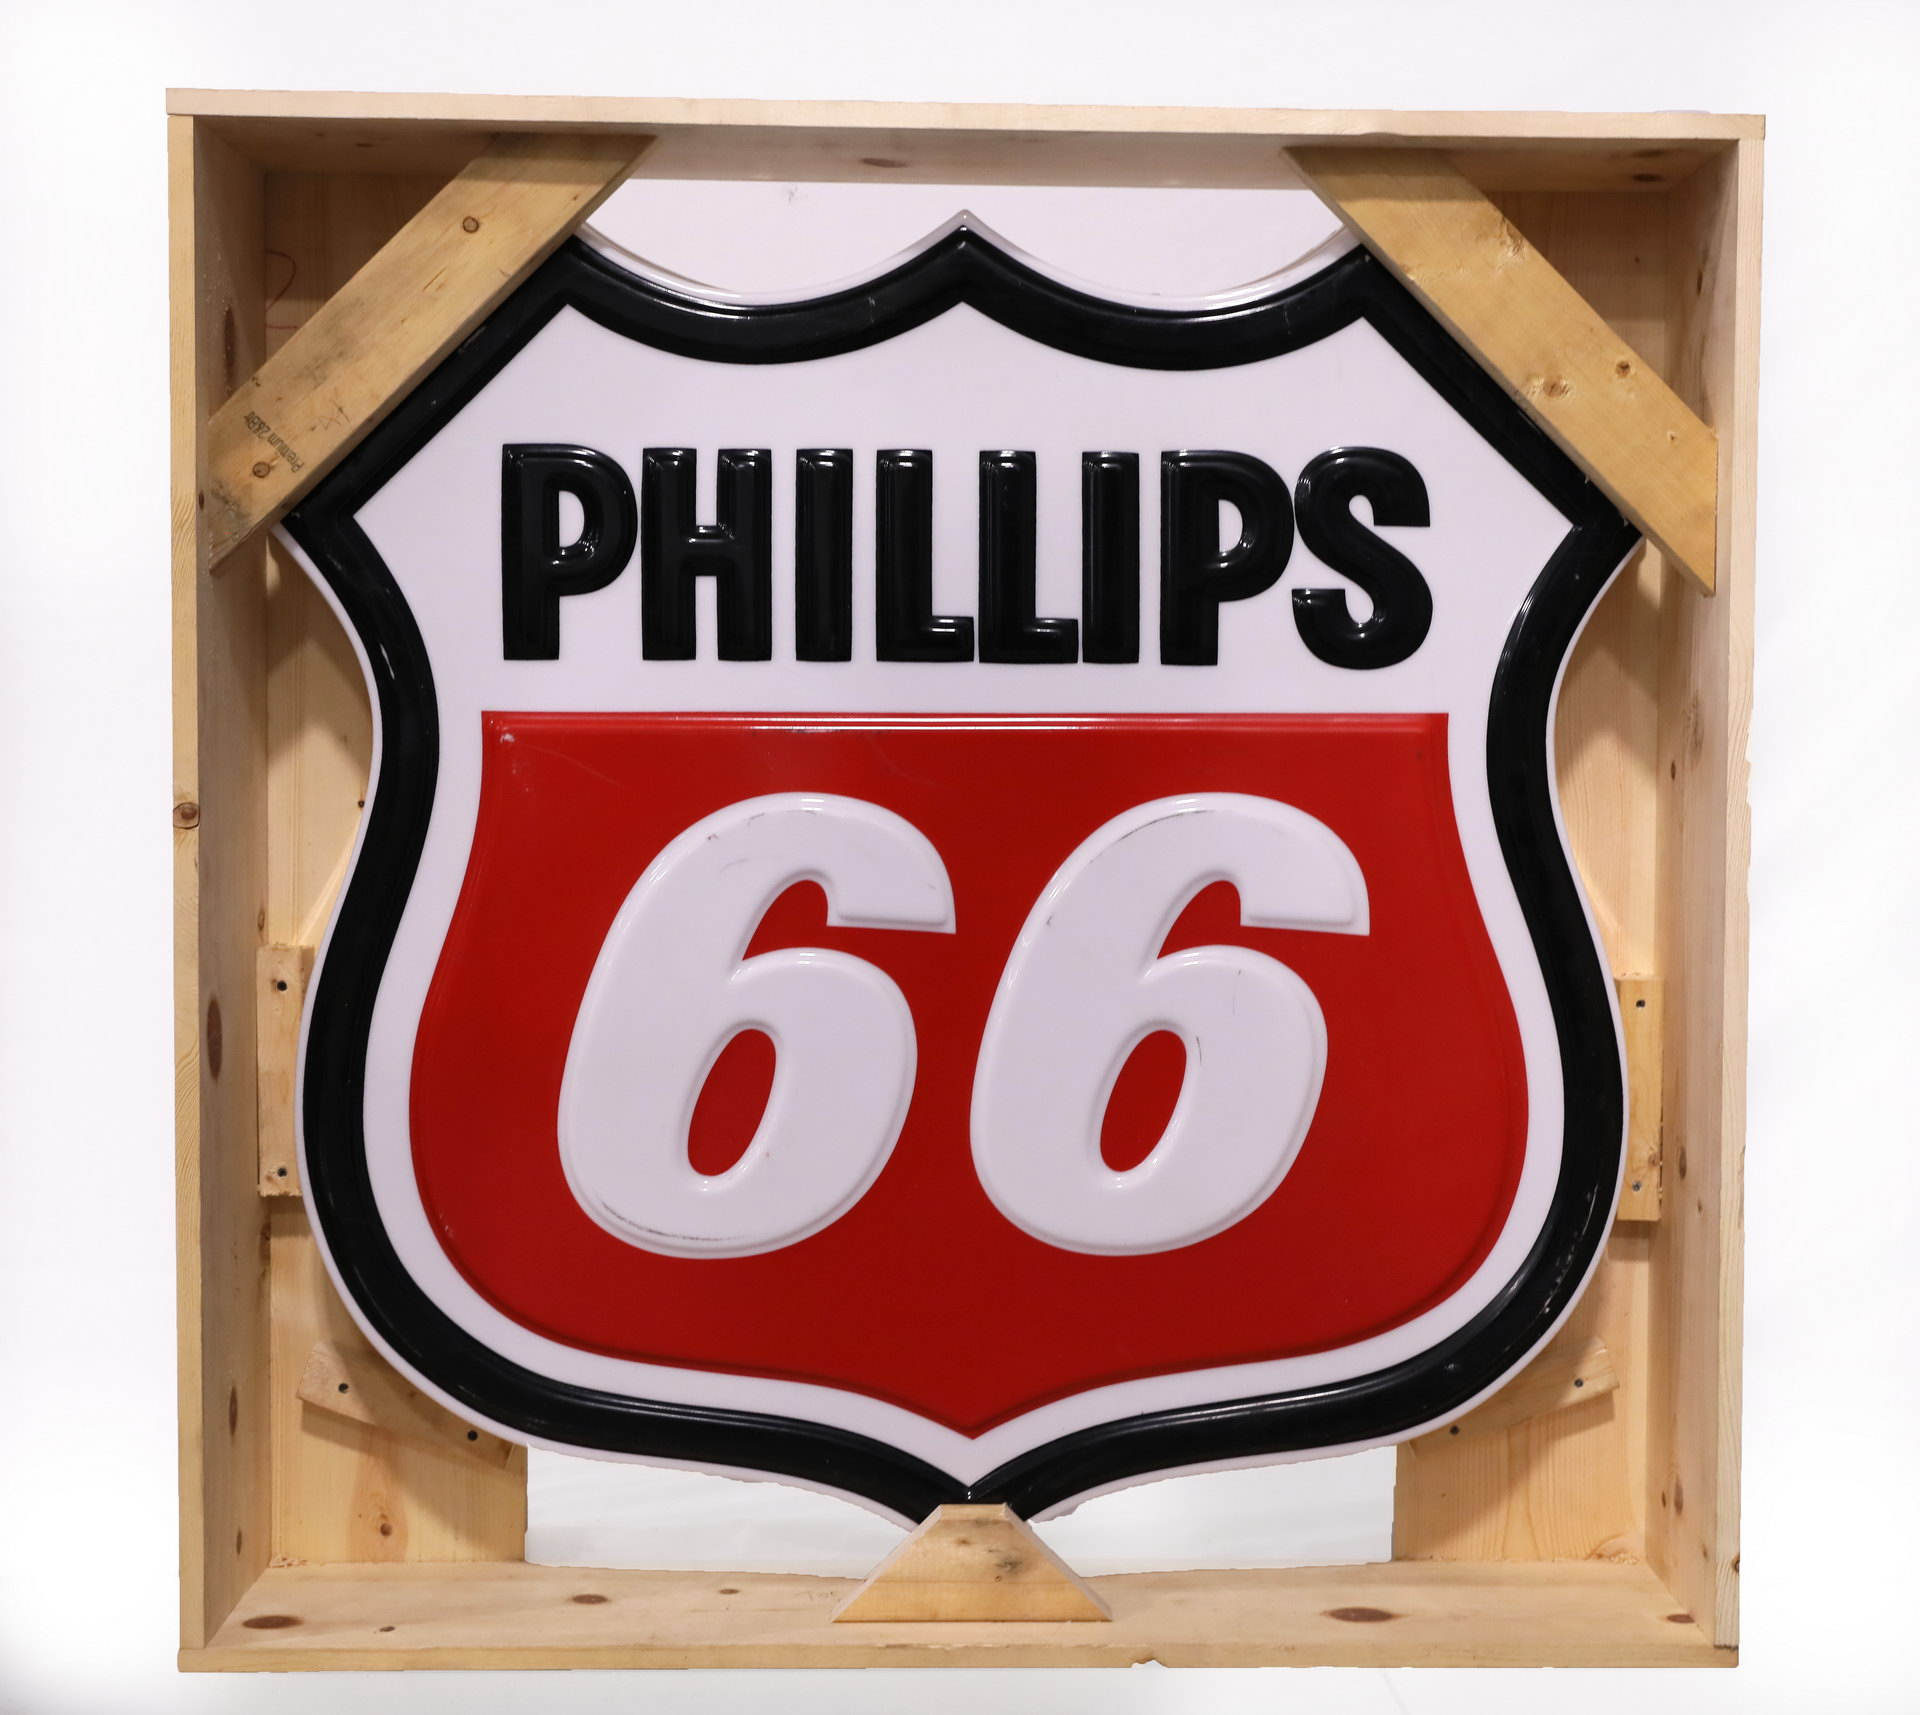 Phillips 66 Lighted Plastic Advertising Can Sign